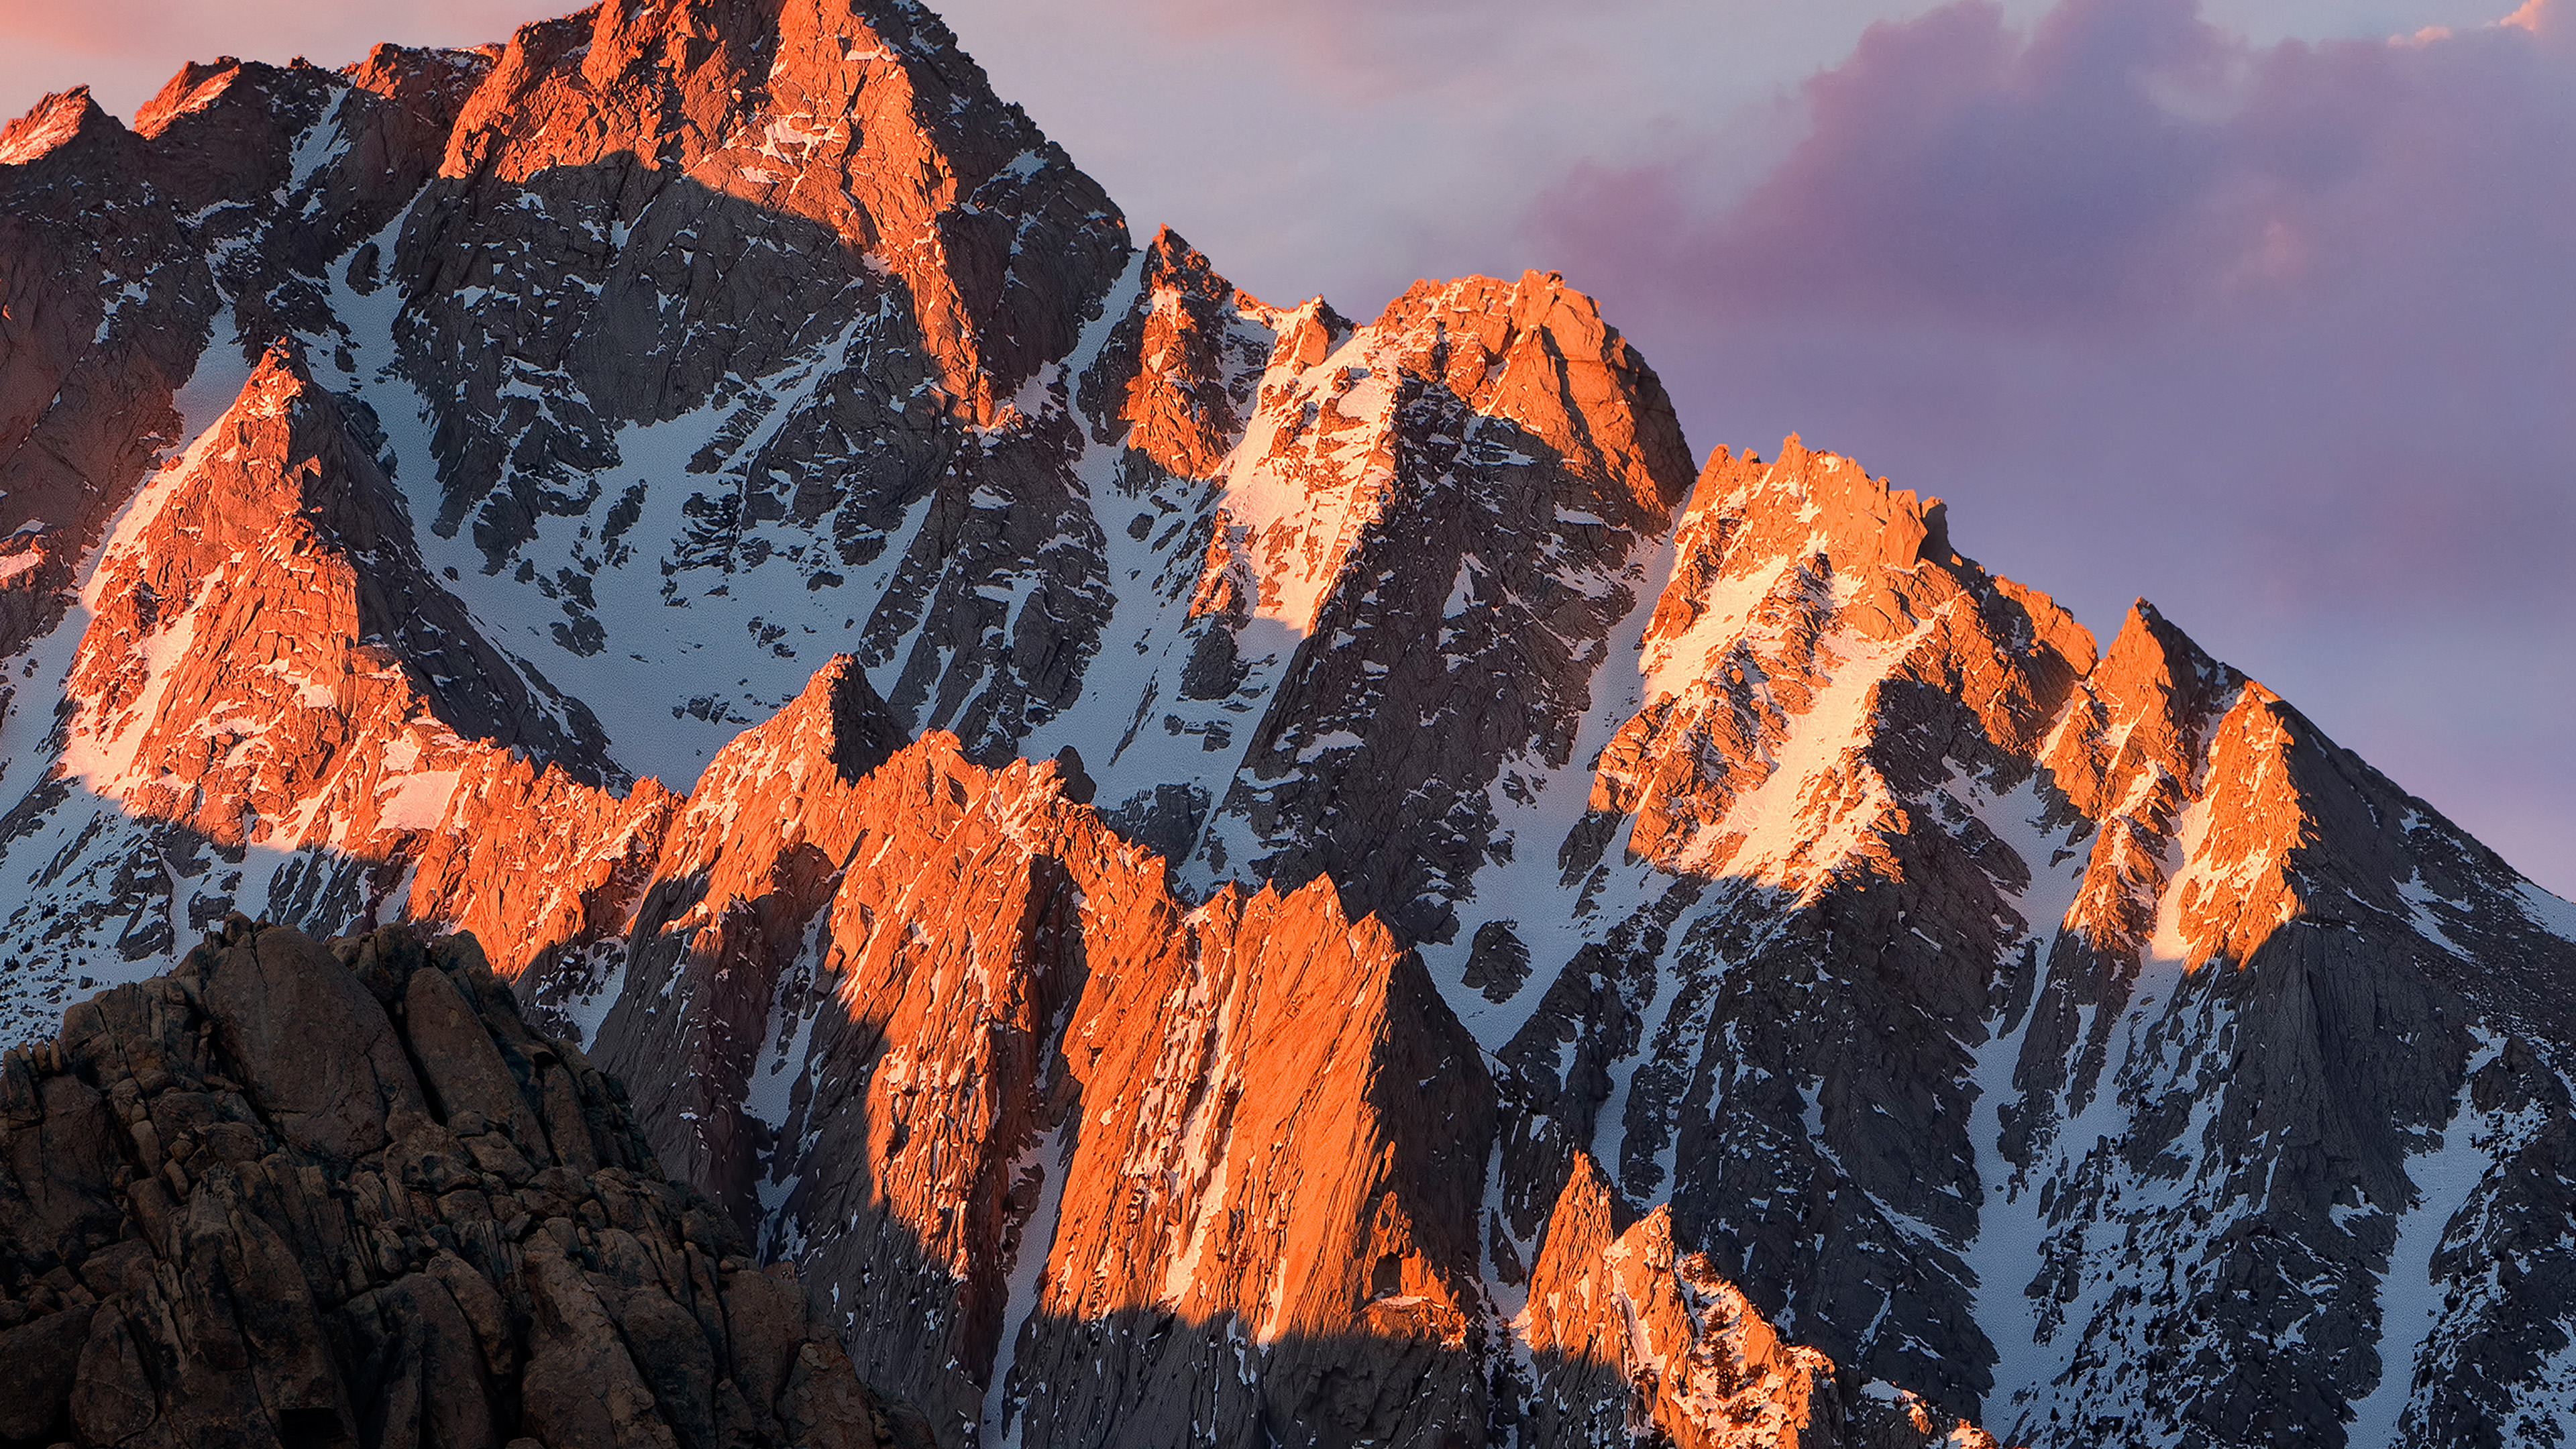 Ar65 Apple Macos Sierra Mountain Wwdc Official Wallpaper